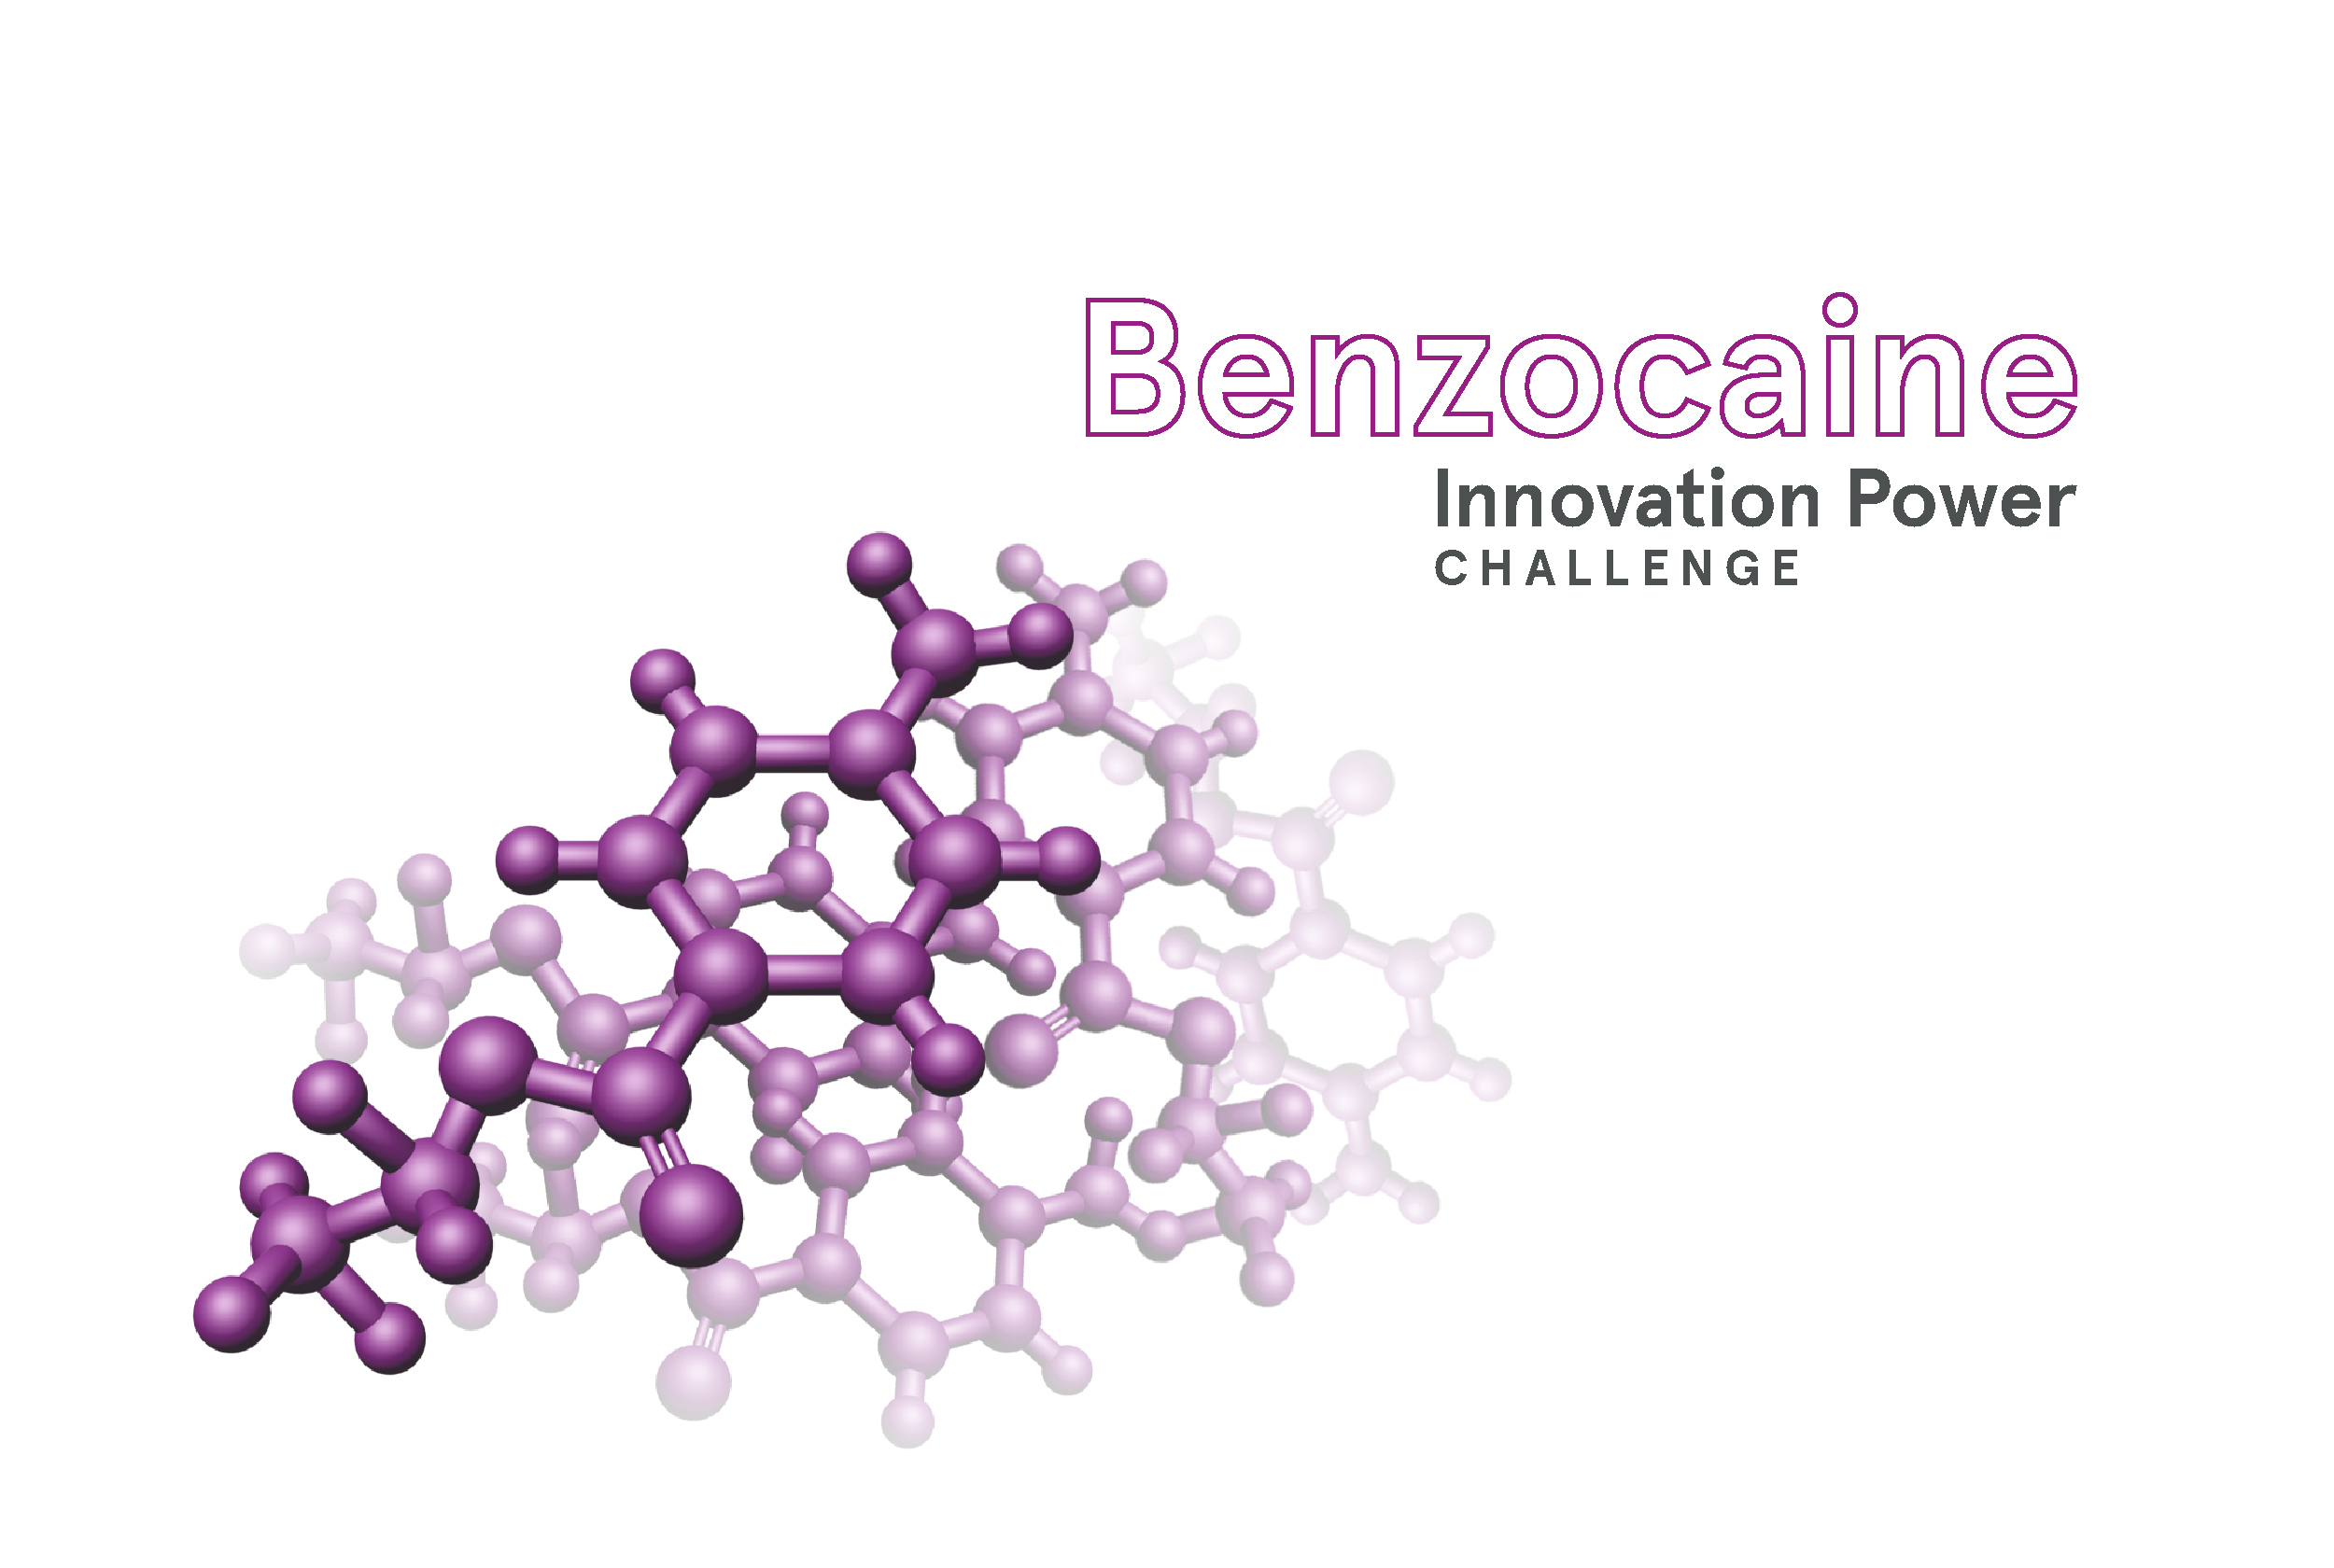 Evonik – Benzocaine Innovation Power Challenge